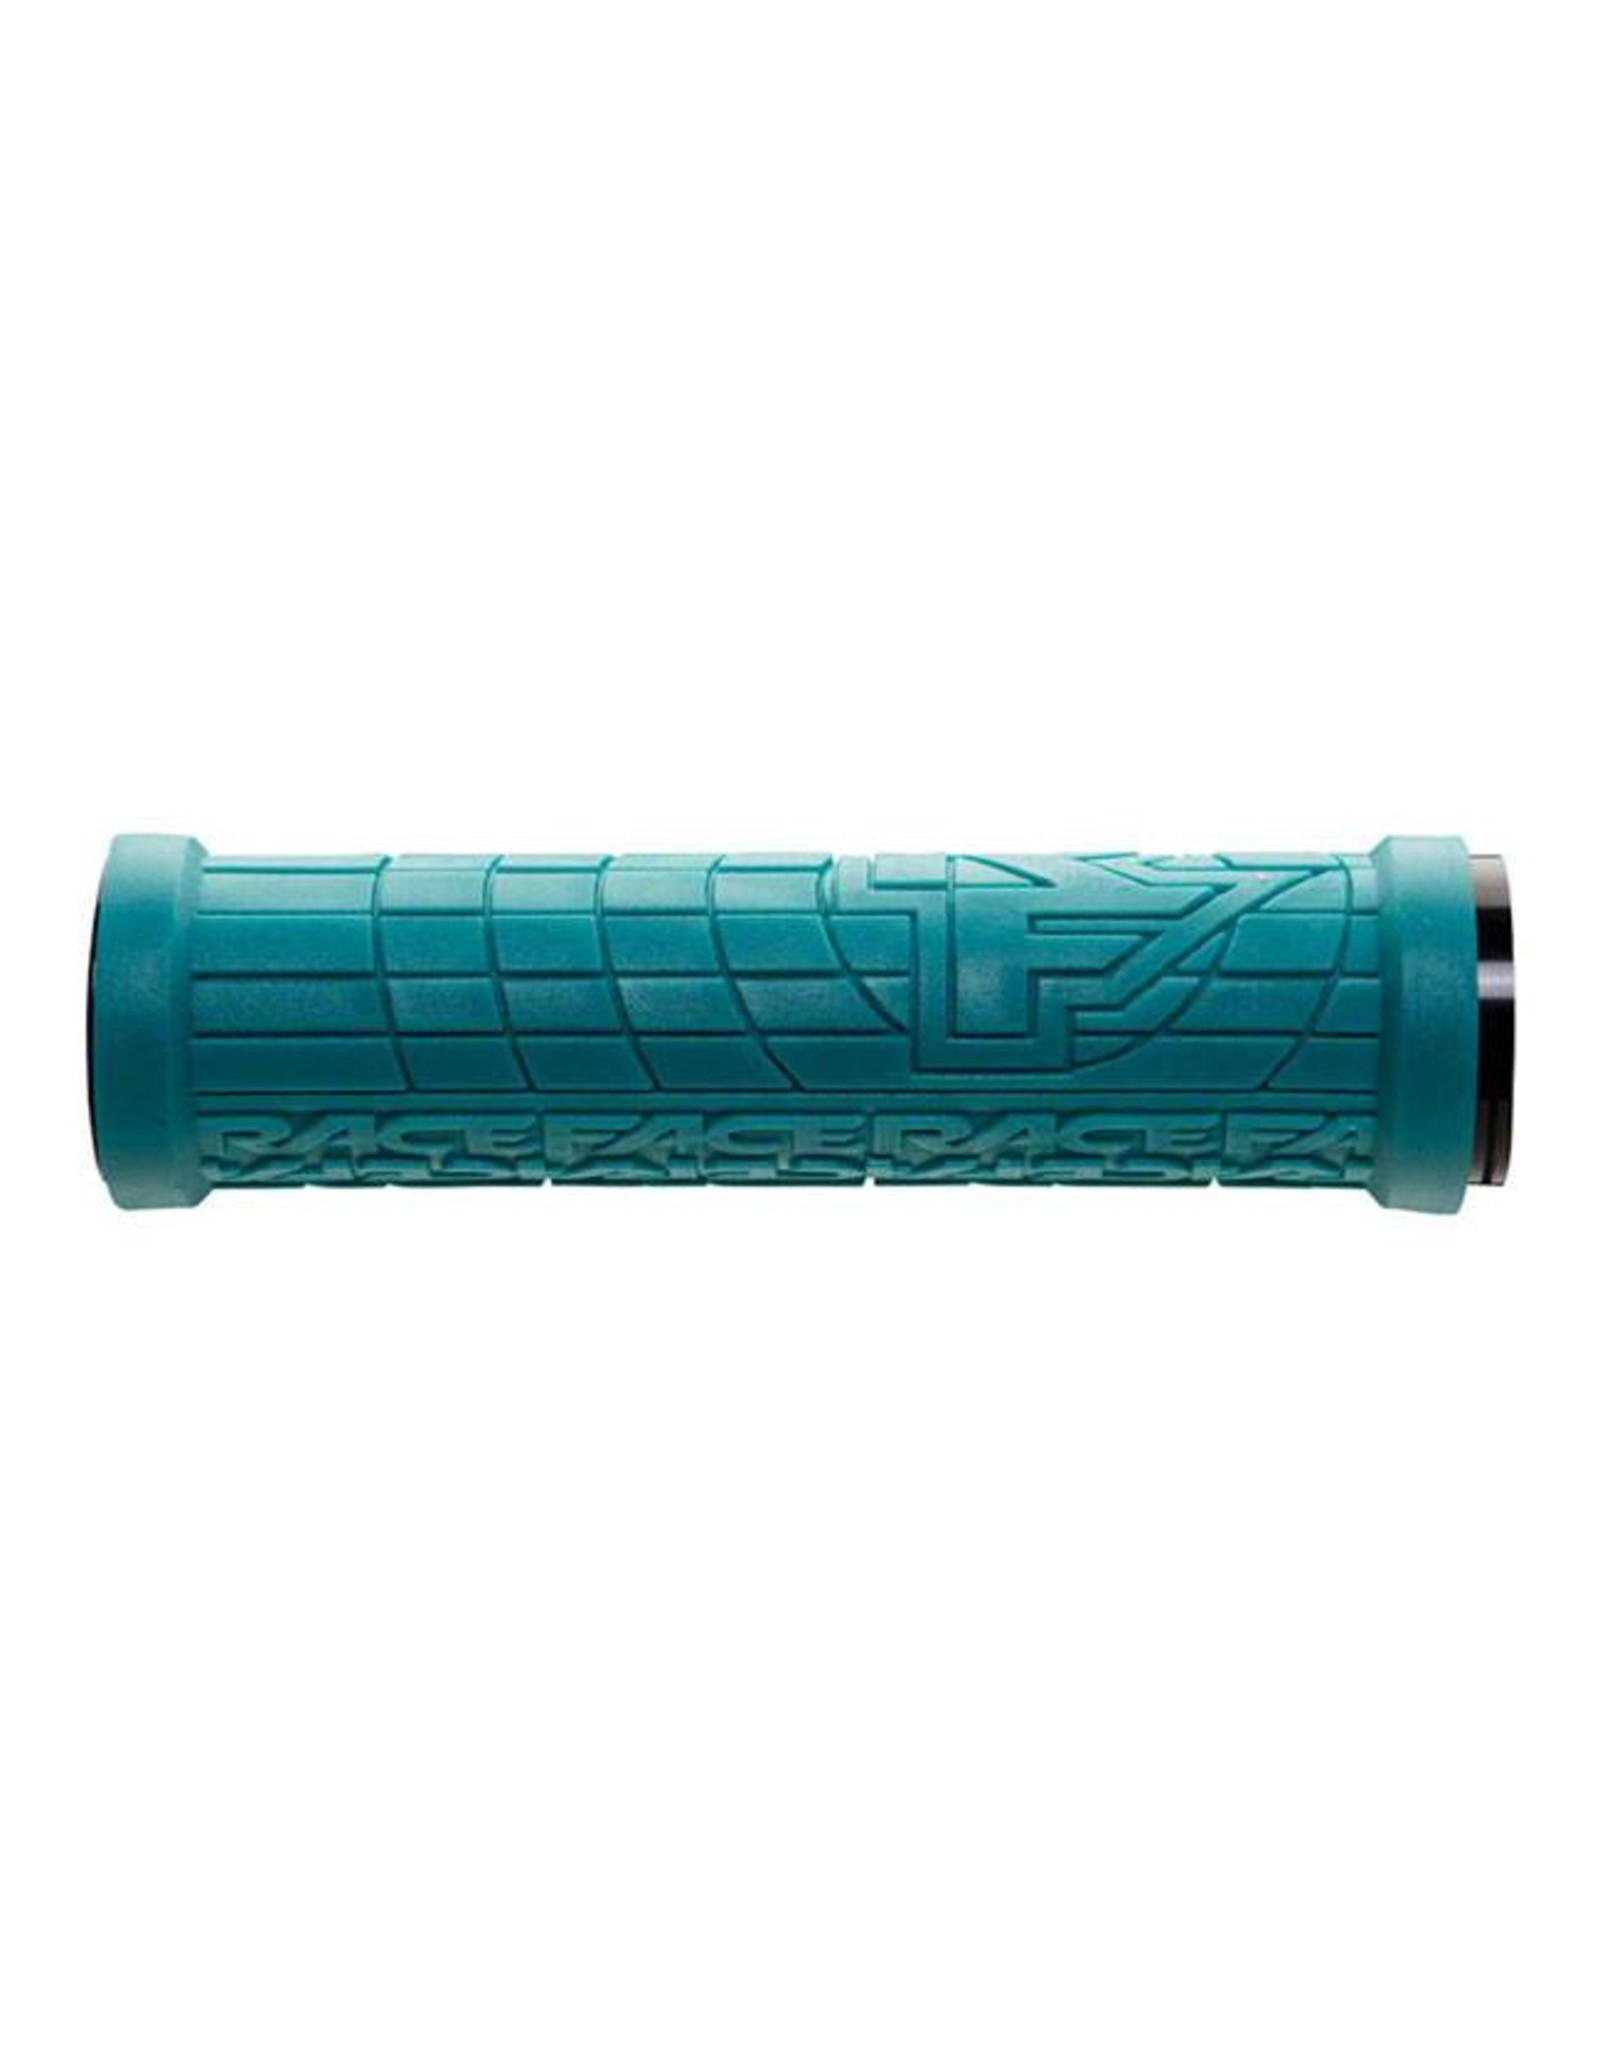 RaceFace RaceFace Grippler 33mm Lock-On Grip Turquoise